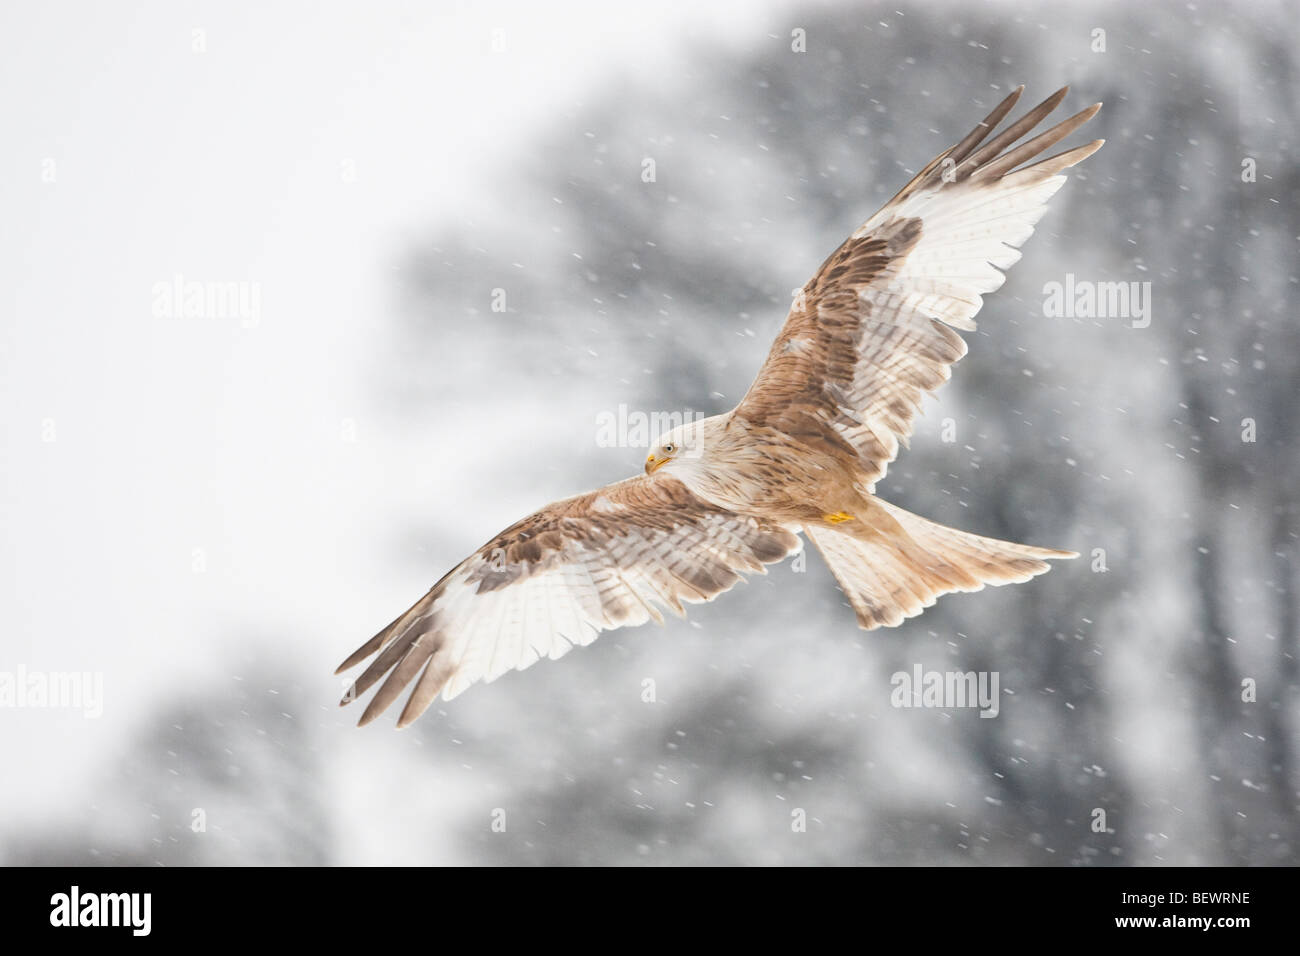 Red kite - Leucistic version showing pale colouring - Stock Image